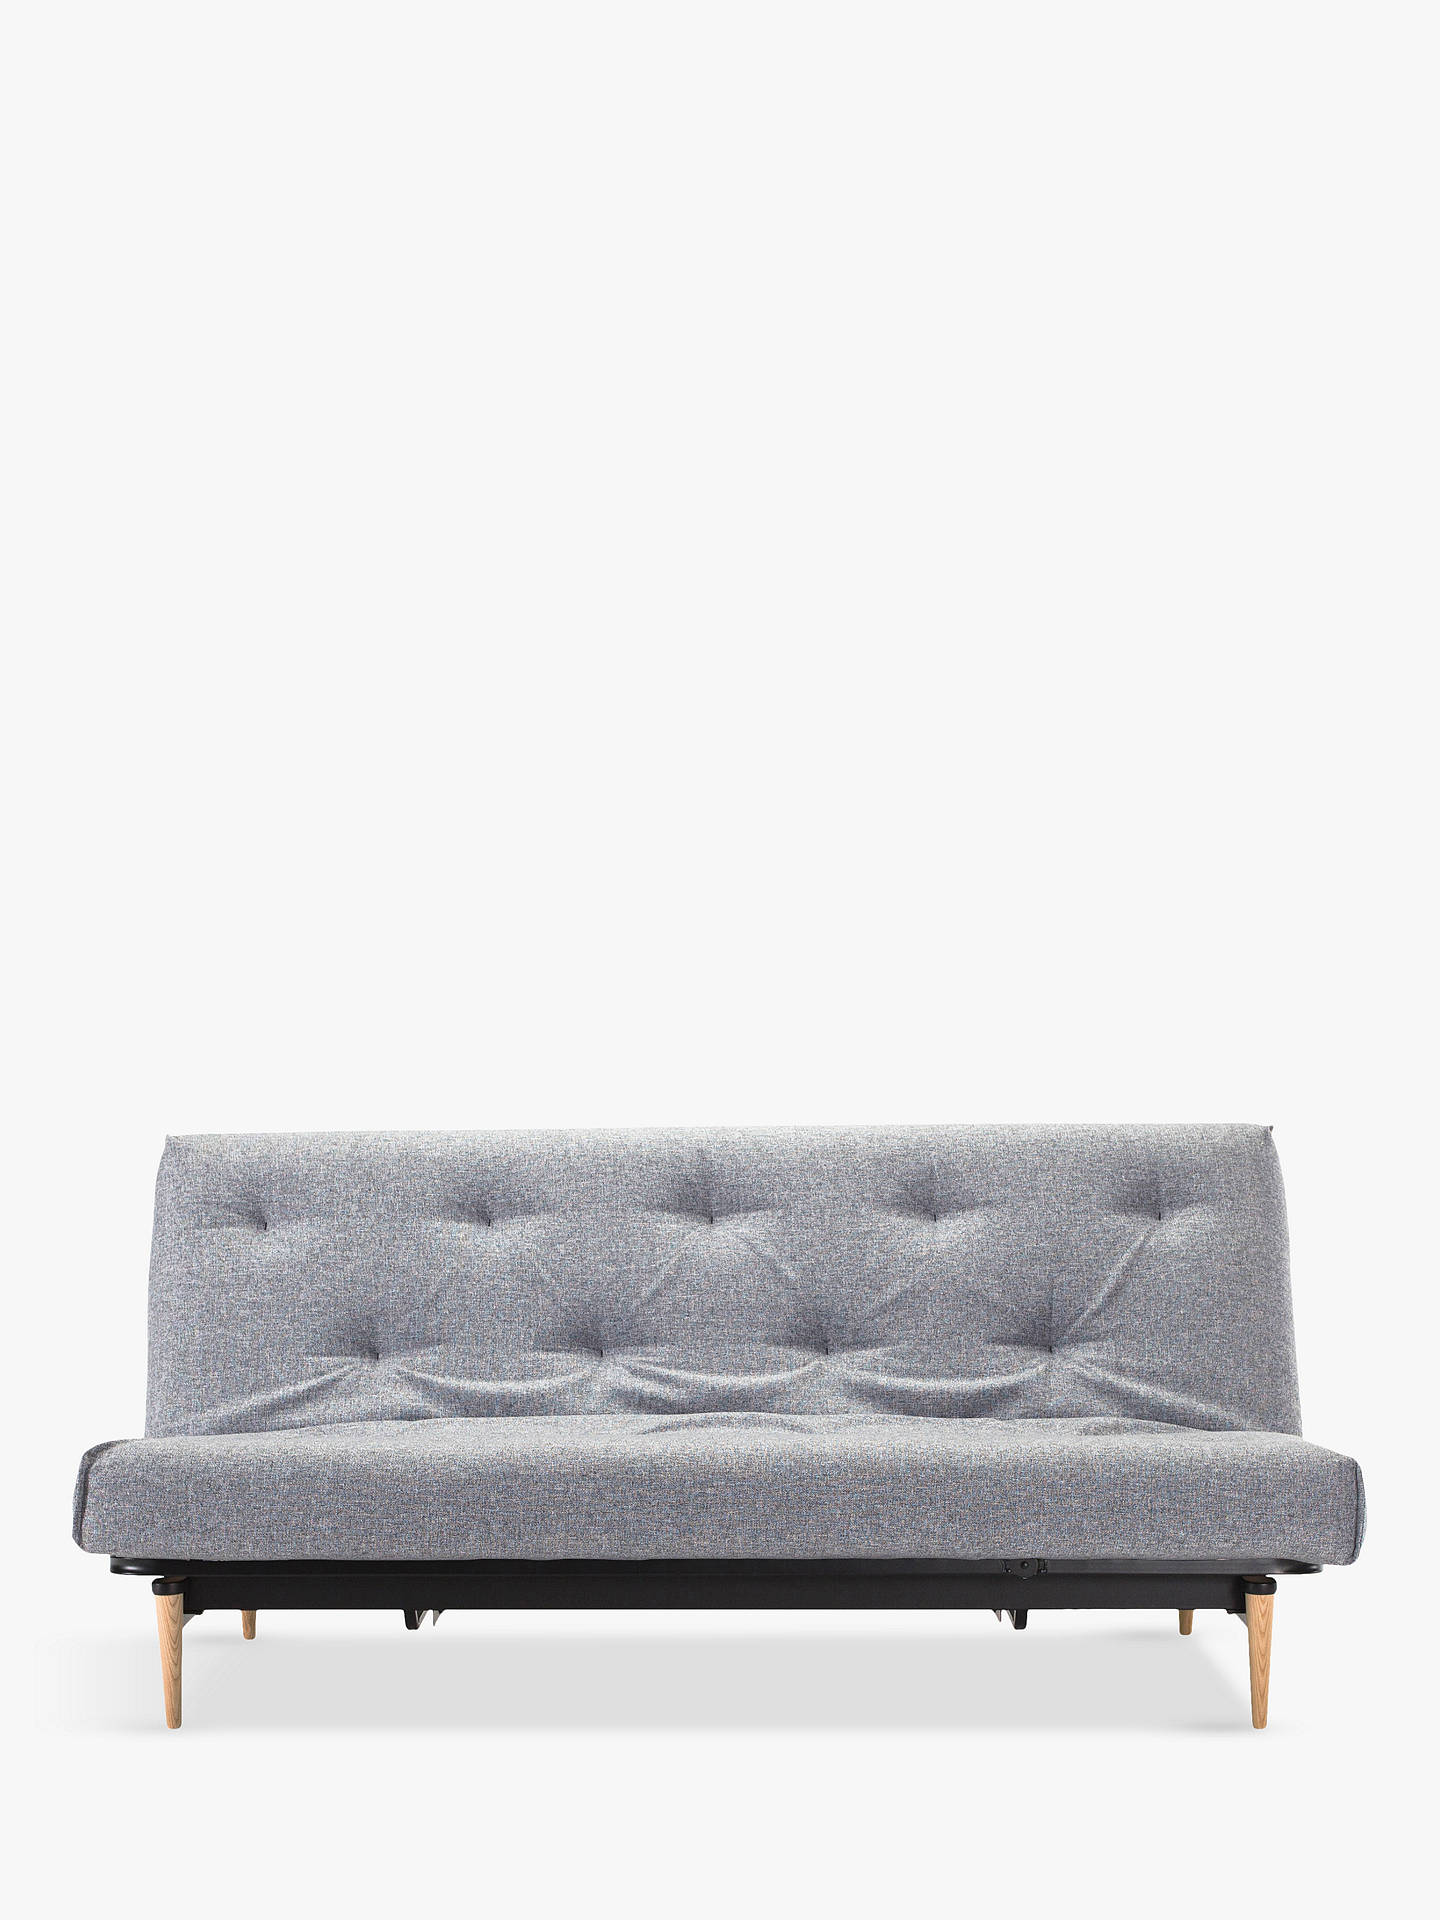 Outstanding Innovation Living Colpus Sofa Bed With Pocket Sprung Mattress Light Leg Twist Granite Twist Granite Ocoug Best Dining Table And Chair Ideas Images Ocougorg